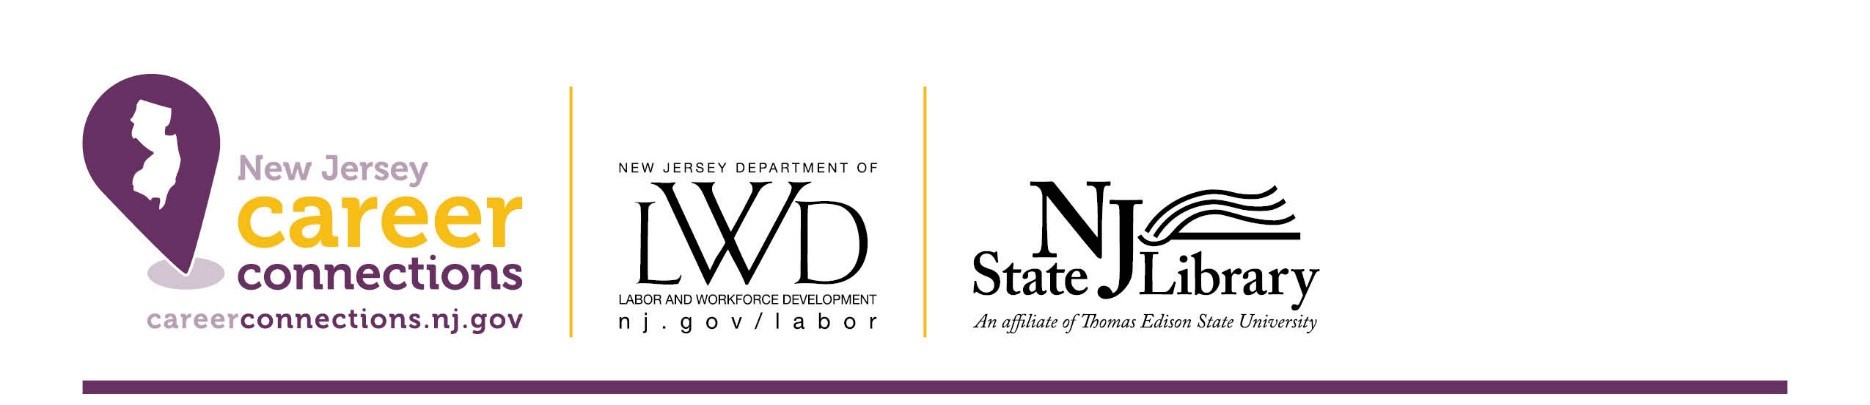 Career Connections, Labor and Workforce Development, and New Jersey State Library logos